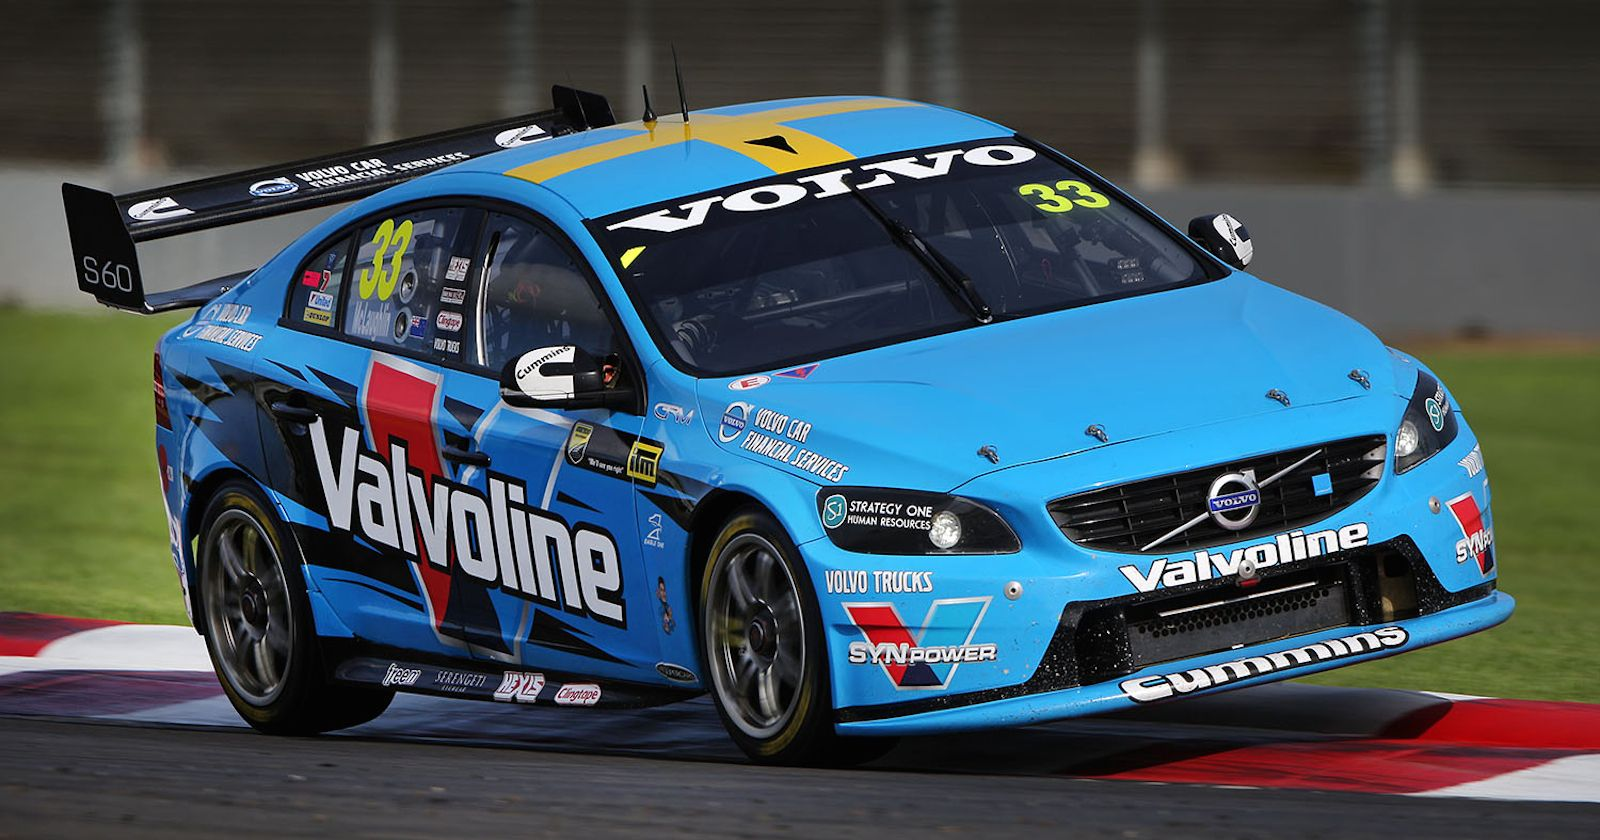 Volvo S Motorsport Future In Doubt Australian Division Uncommitted To V8 Supercars Beyond 2016 Http Www Caradvice Com Au 32 Volvo Super Cars V8 Supercars